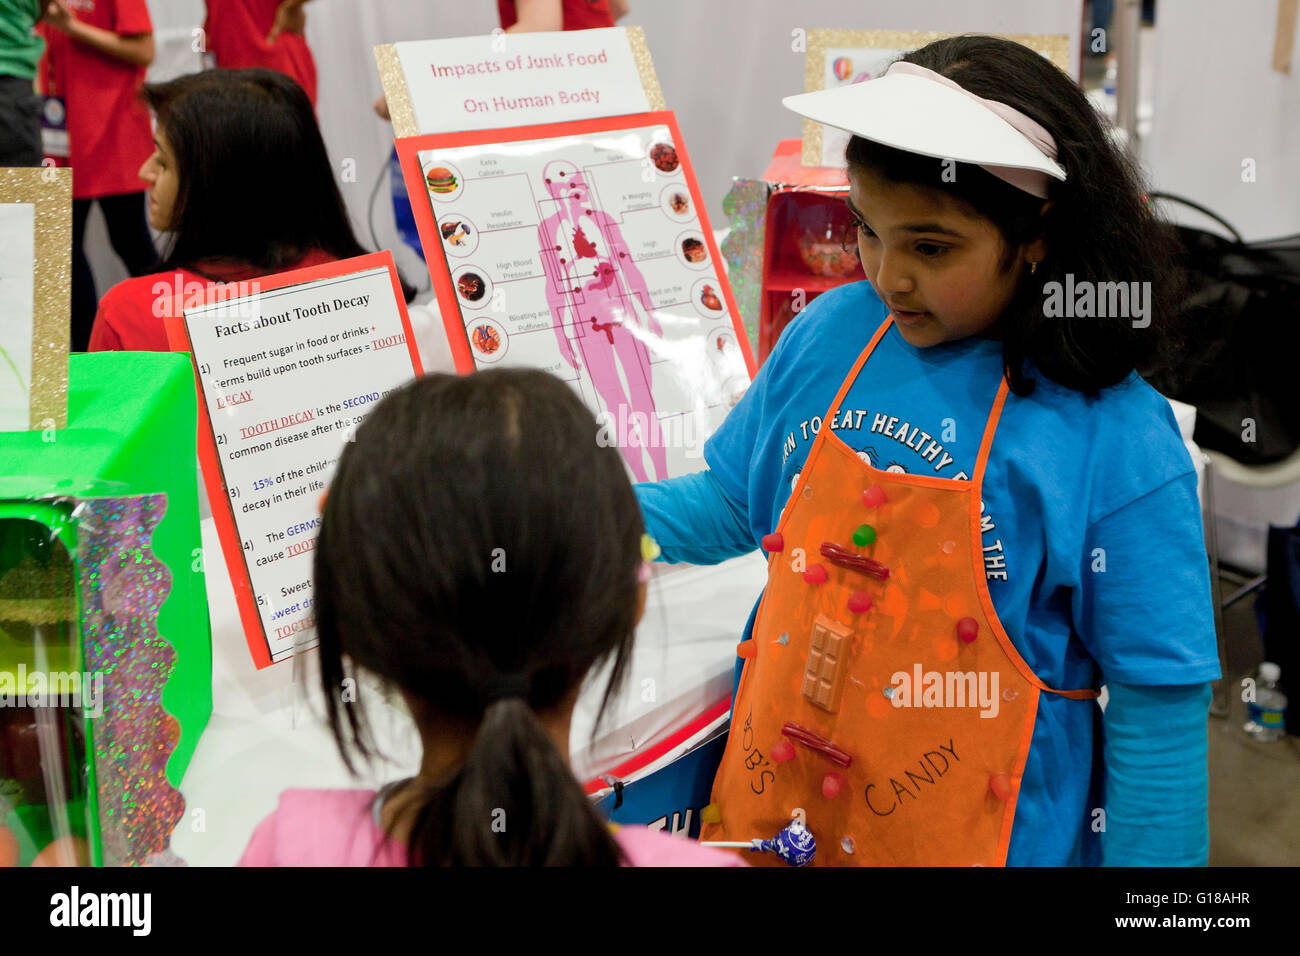 Female students at a food nutrition project booth at science fair - USA - Stock Image